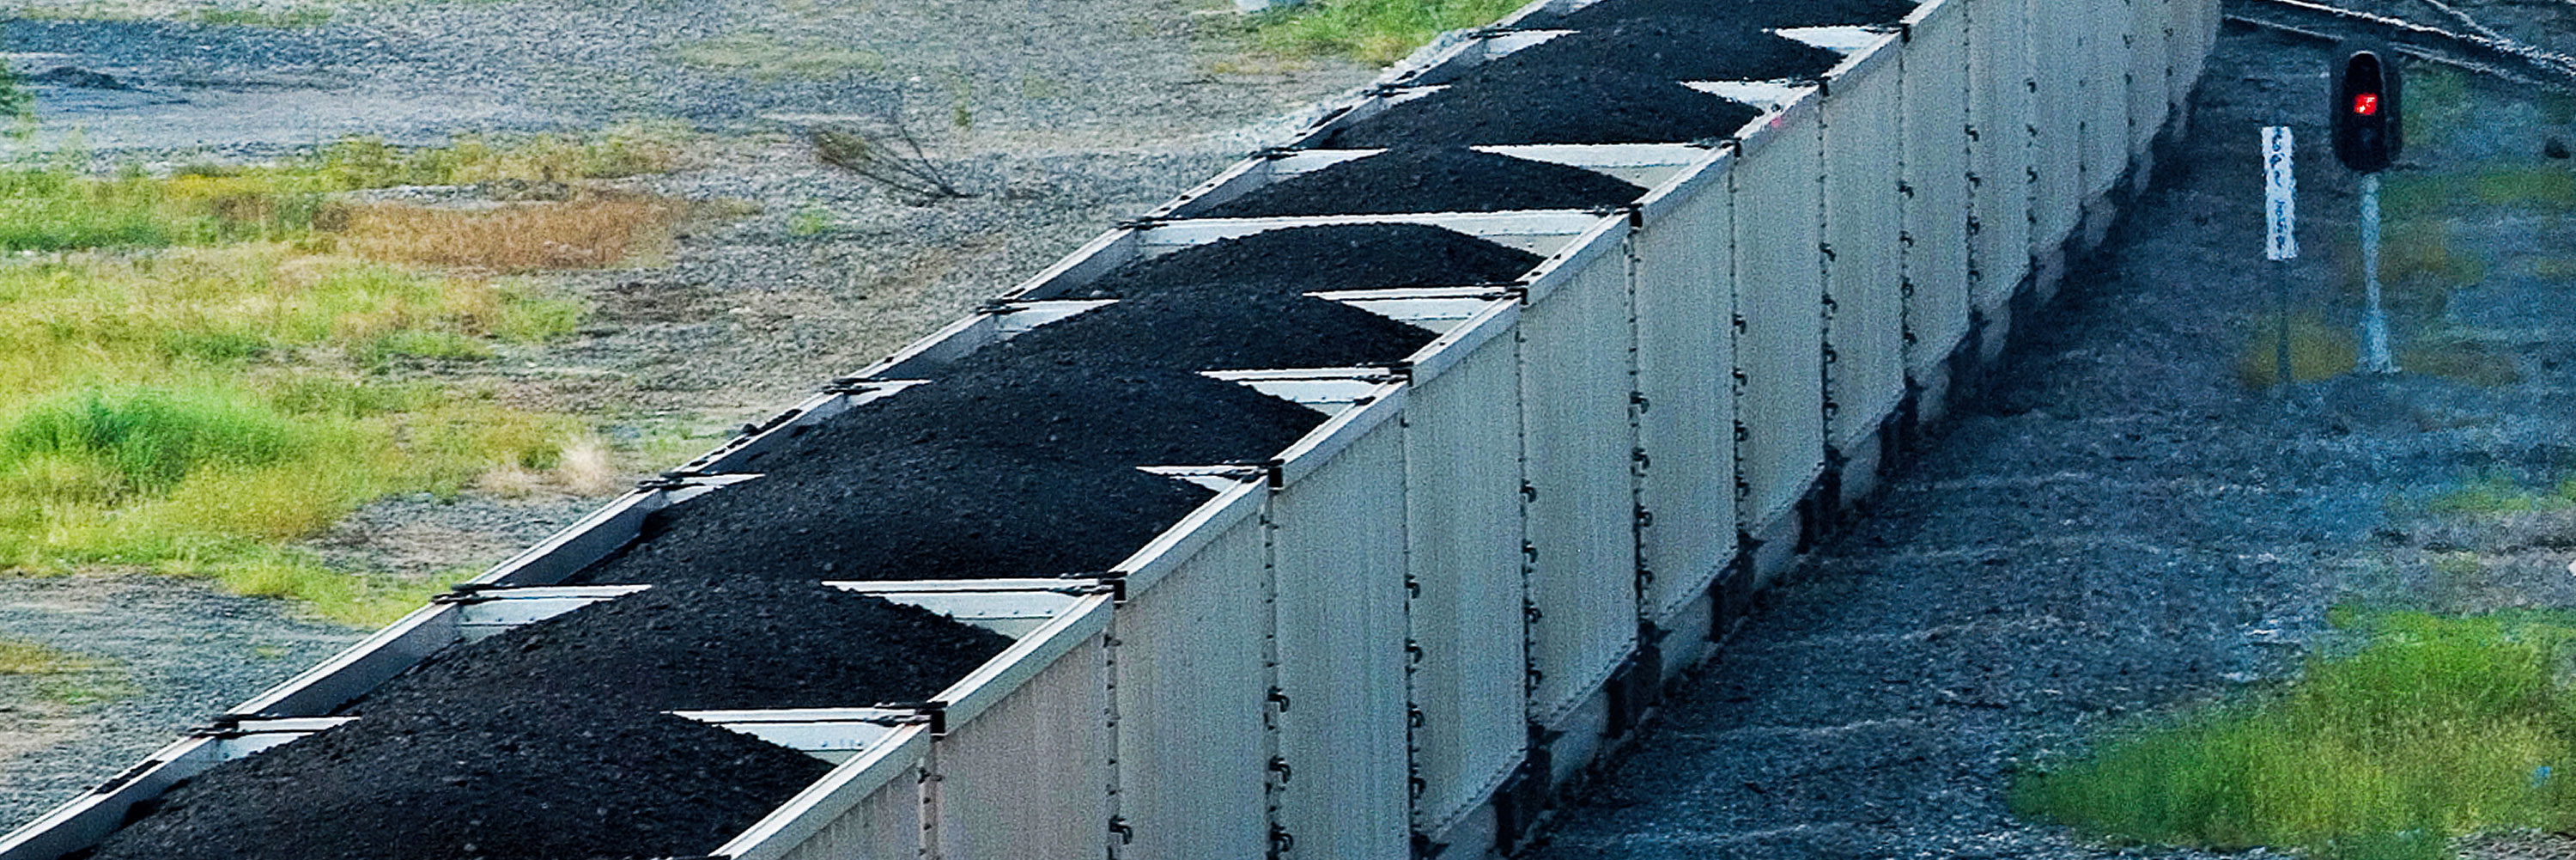 Coal cover image